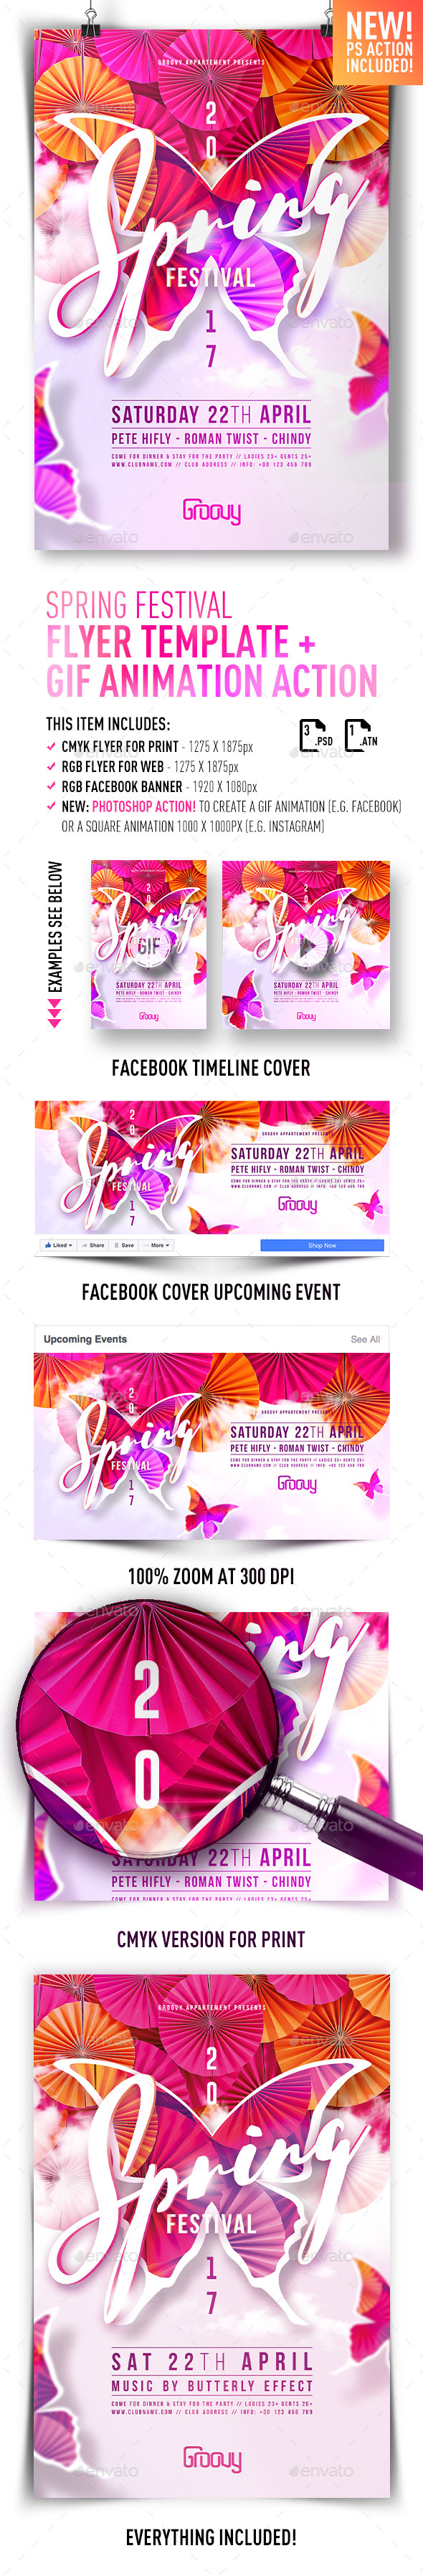 Spring Festival Flyer + GIF Animation Action - Clubs & Parties Events